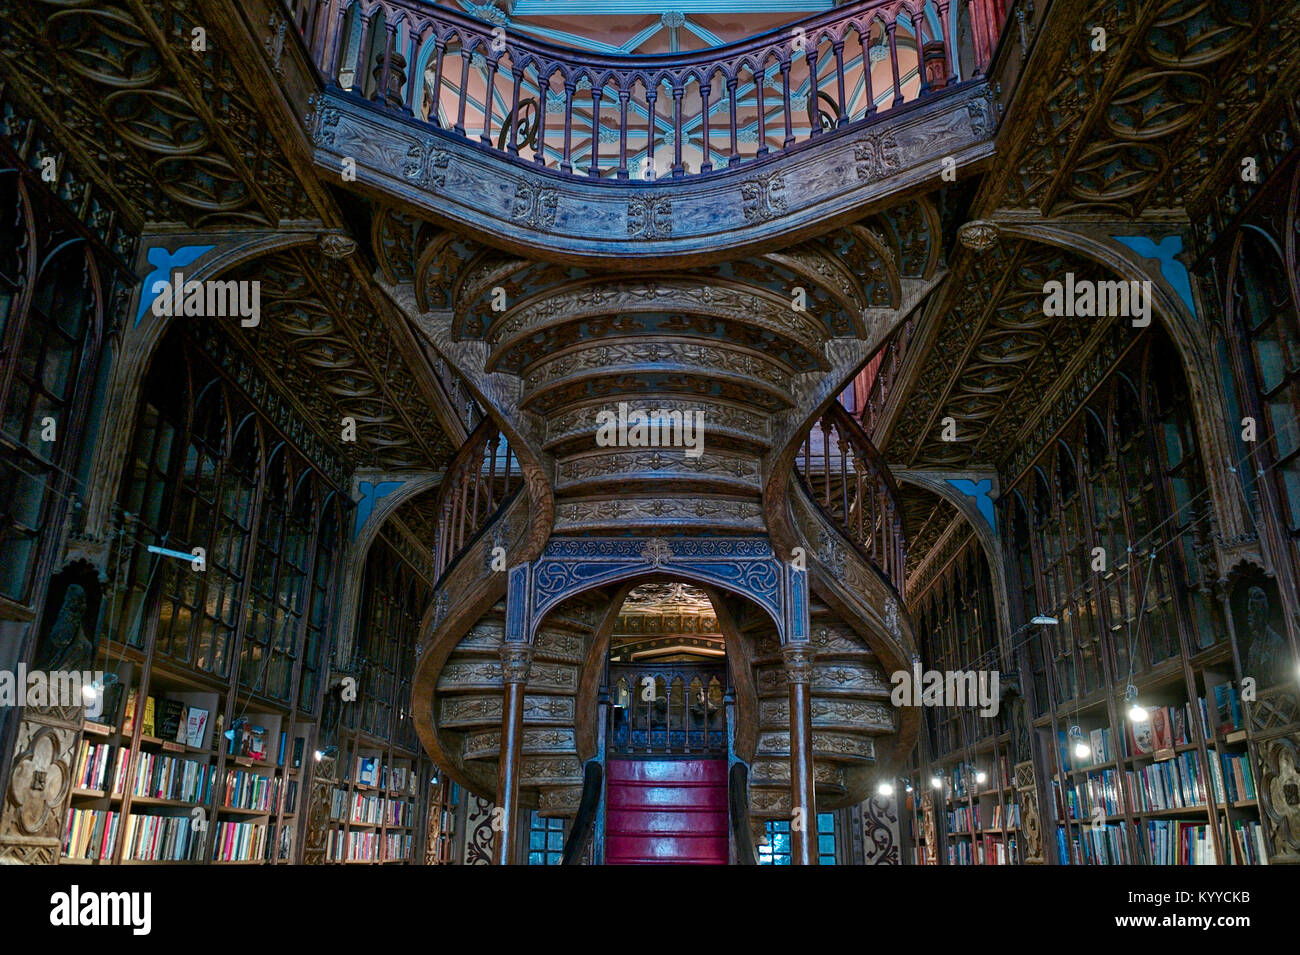 Libreria Lello e Irmao, with detailed wood balusters, is one of the oldest bookstores in Portugal and frequently - Stock Image